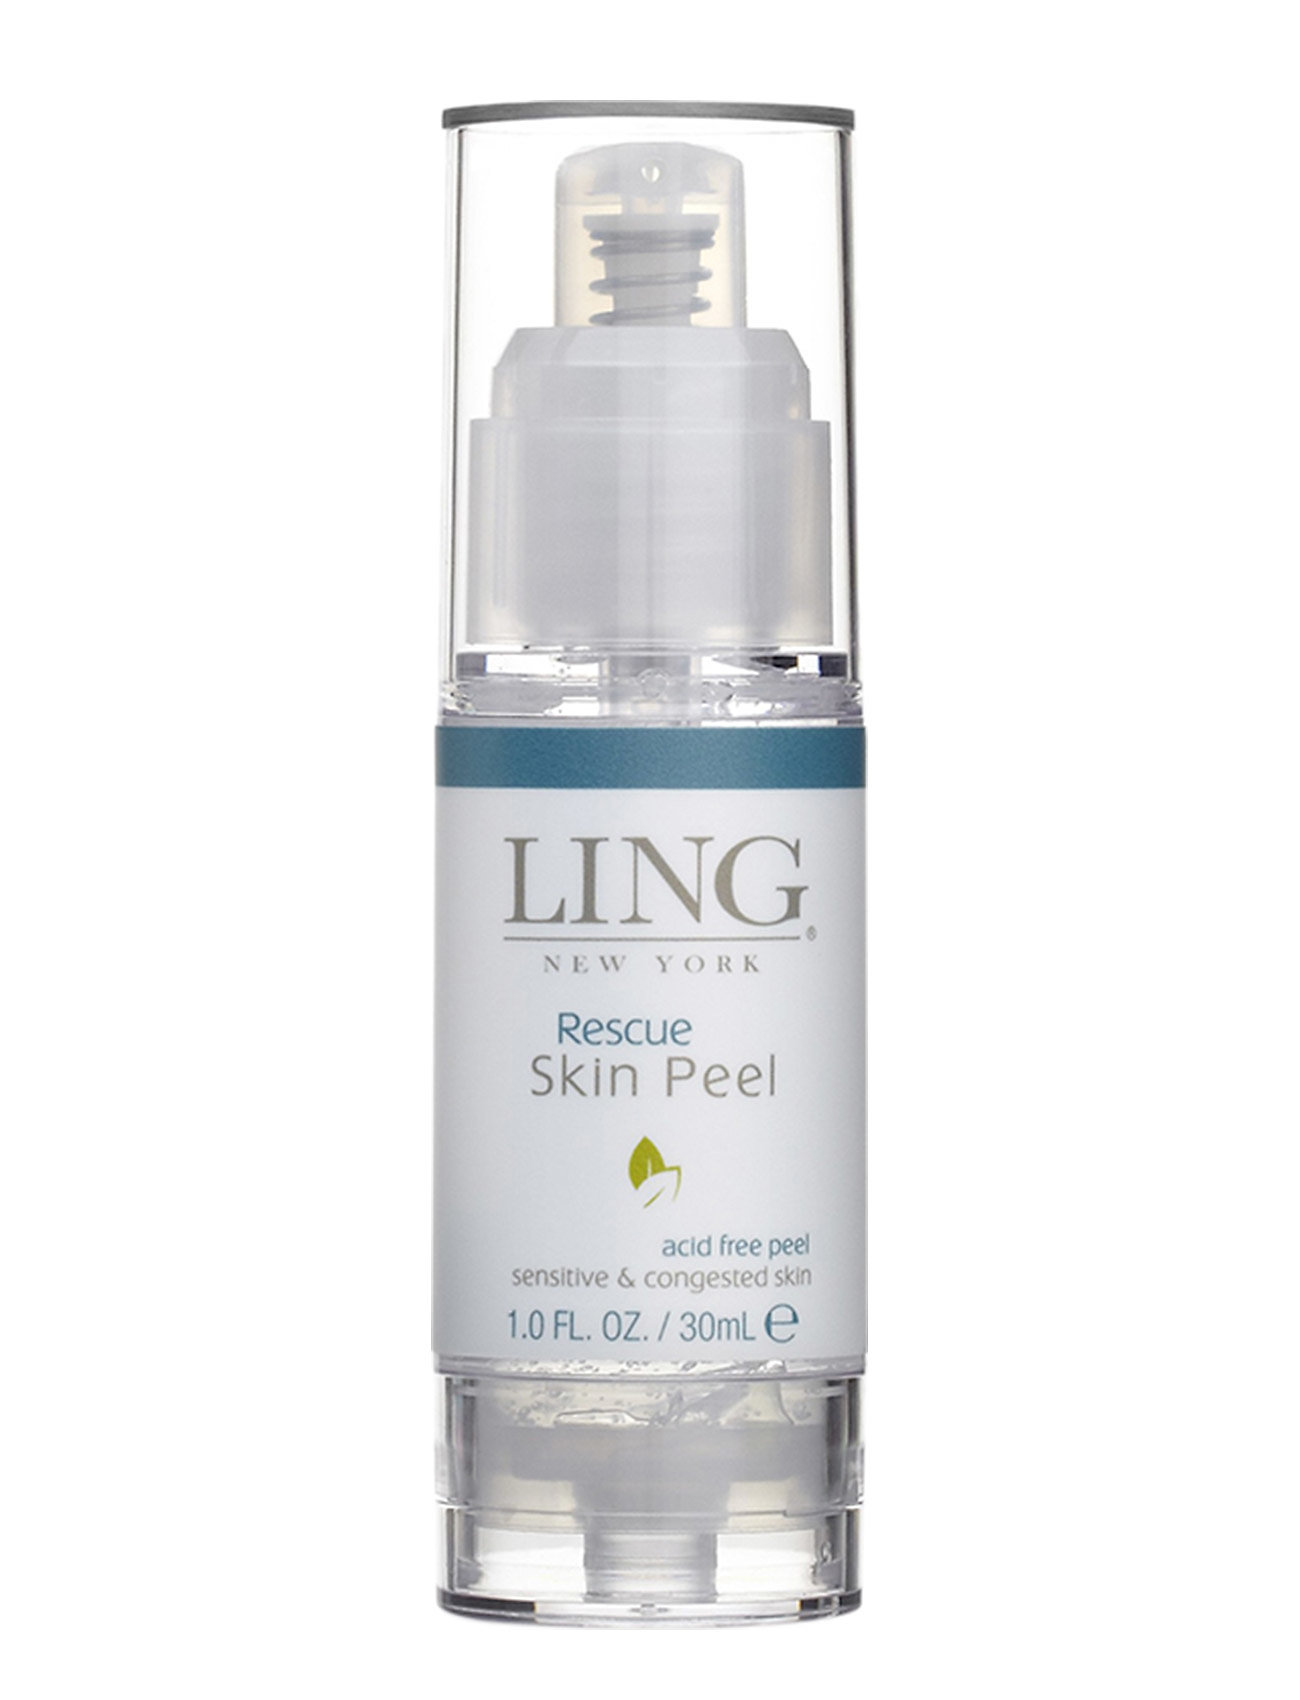 LING New York Rescue Skin Peel - acid free peel - CLEAR